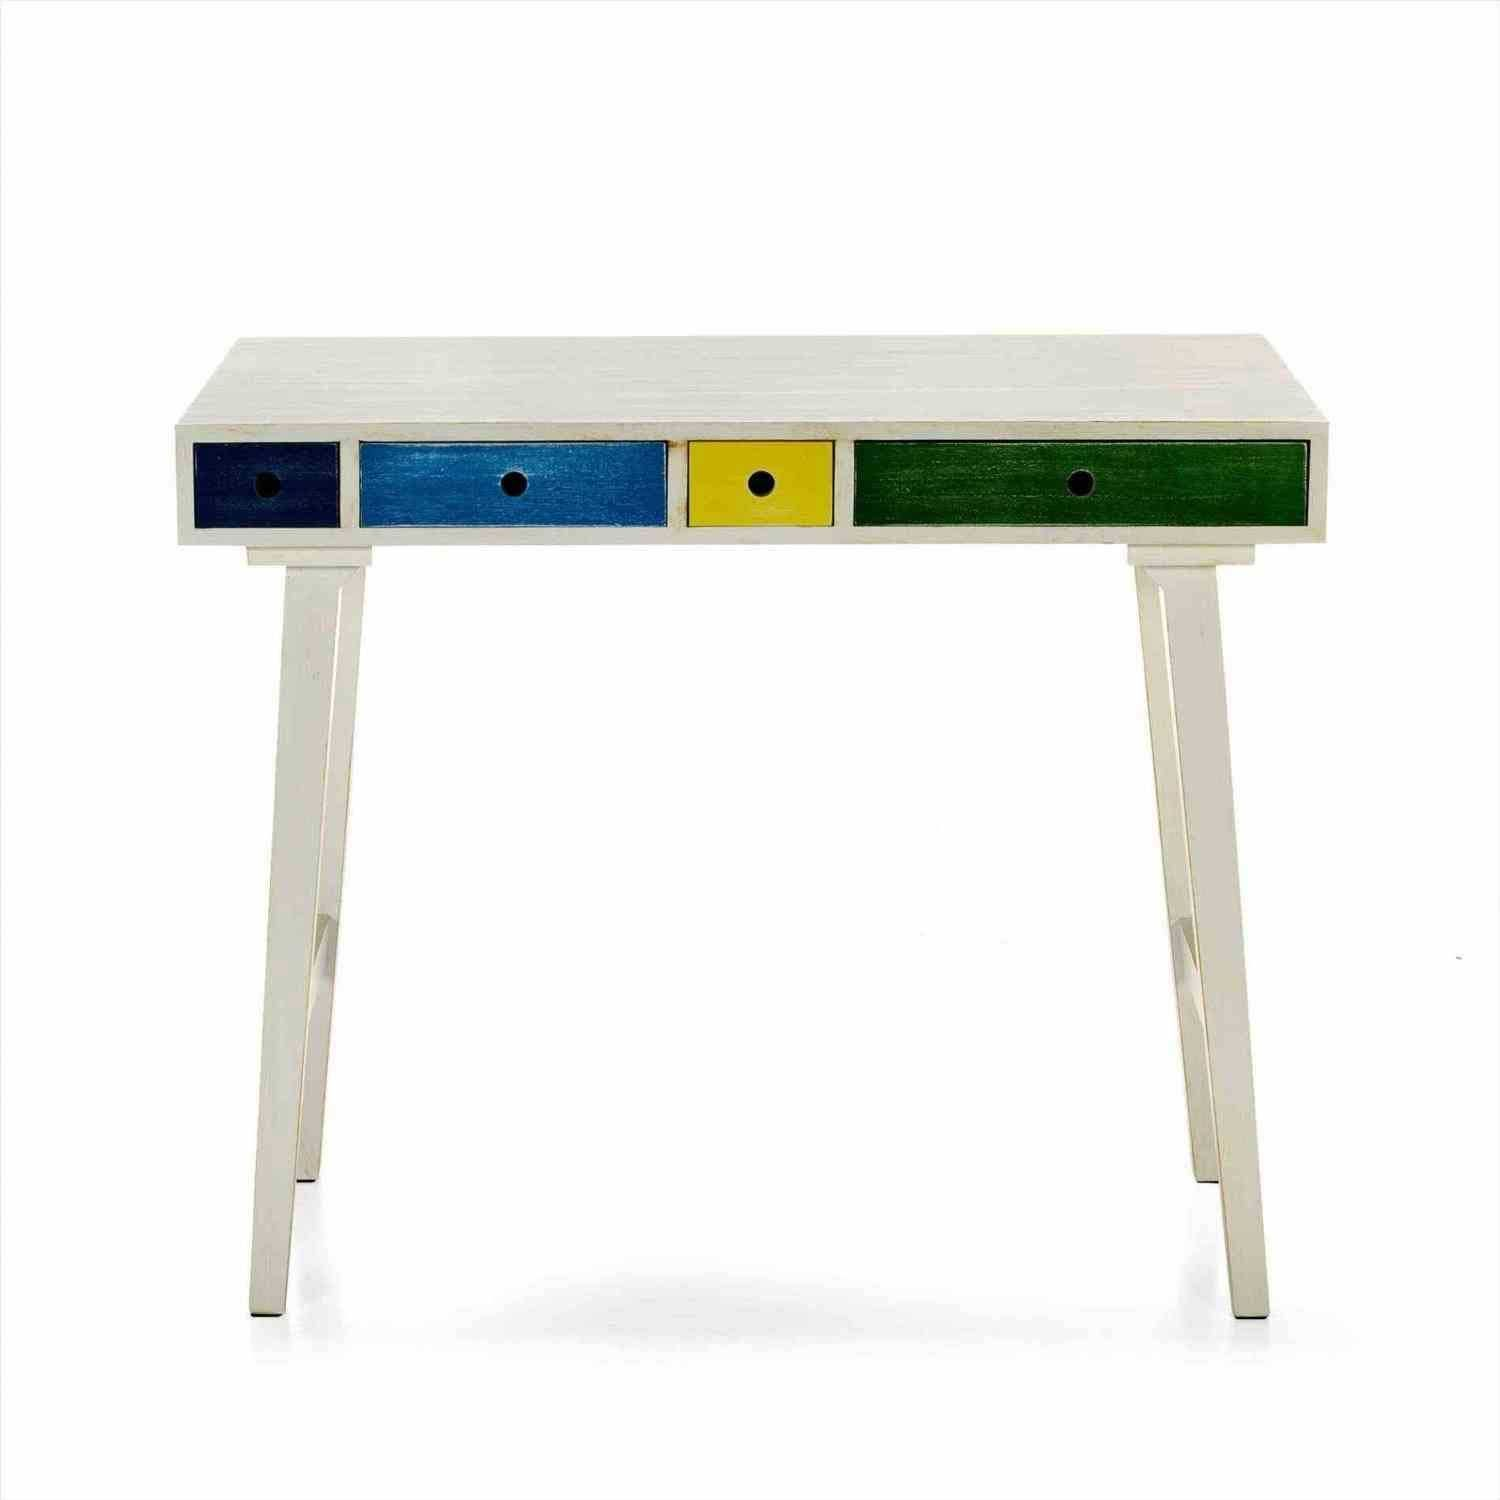 Lit Combine Fly Bureau Junior Ikea Of Lit Combine Fly En 2020 Meubles But Mobilier De Salon Bureau Blanc